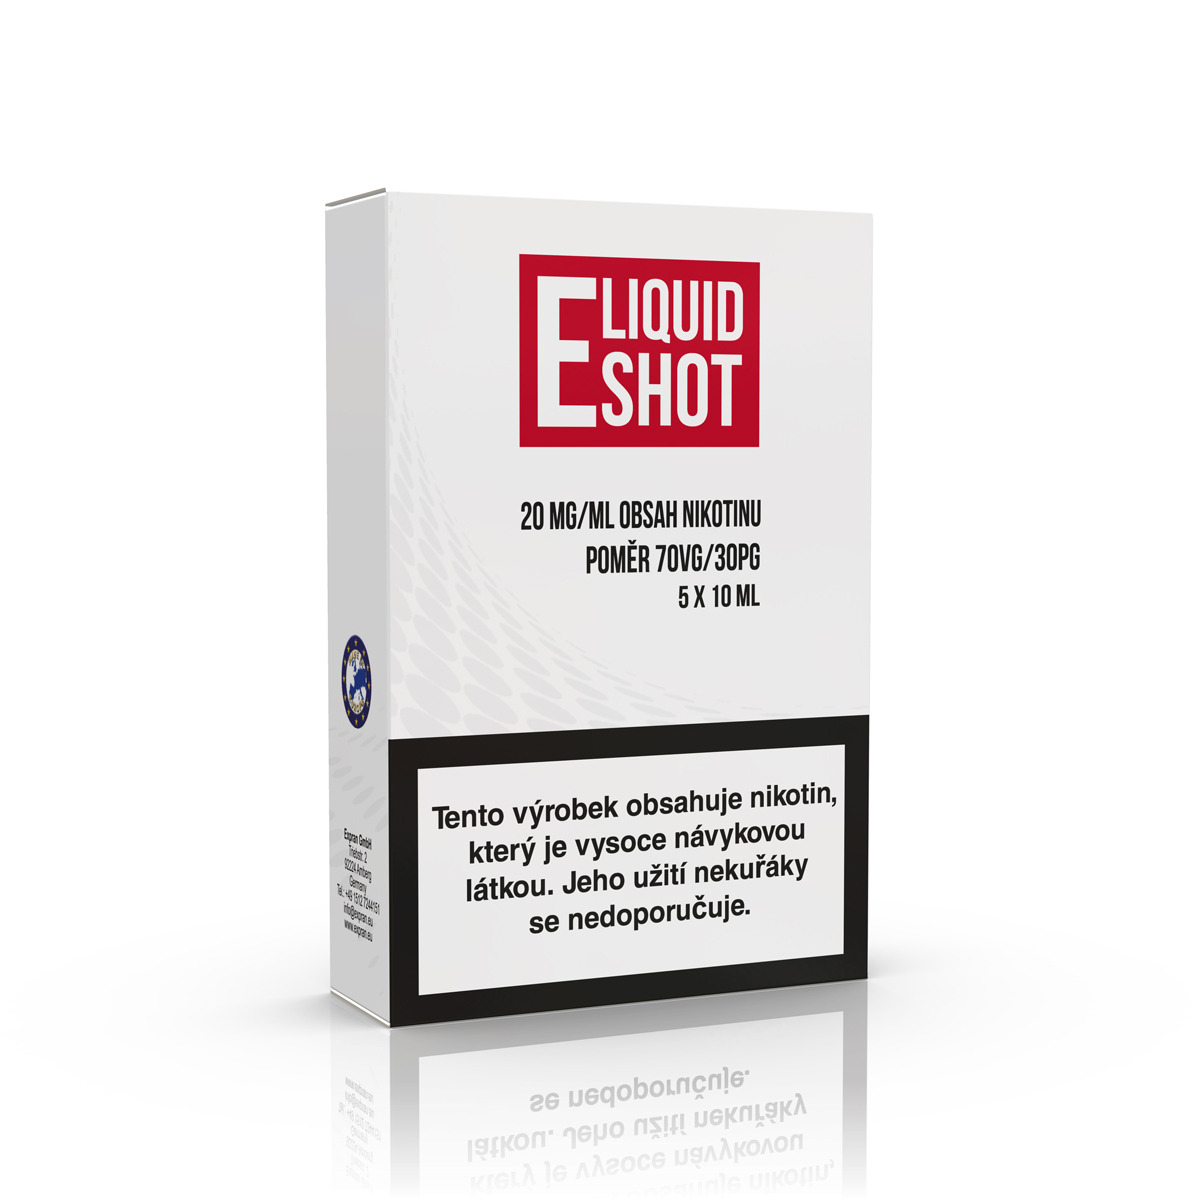 5 pack E-Liquid Shot Booster 30PG/70VG 20 mg/ml